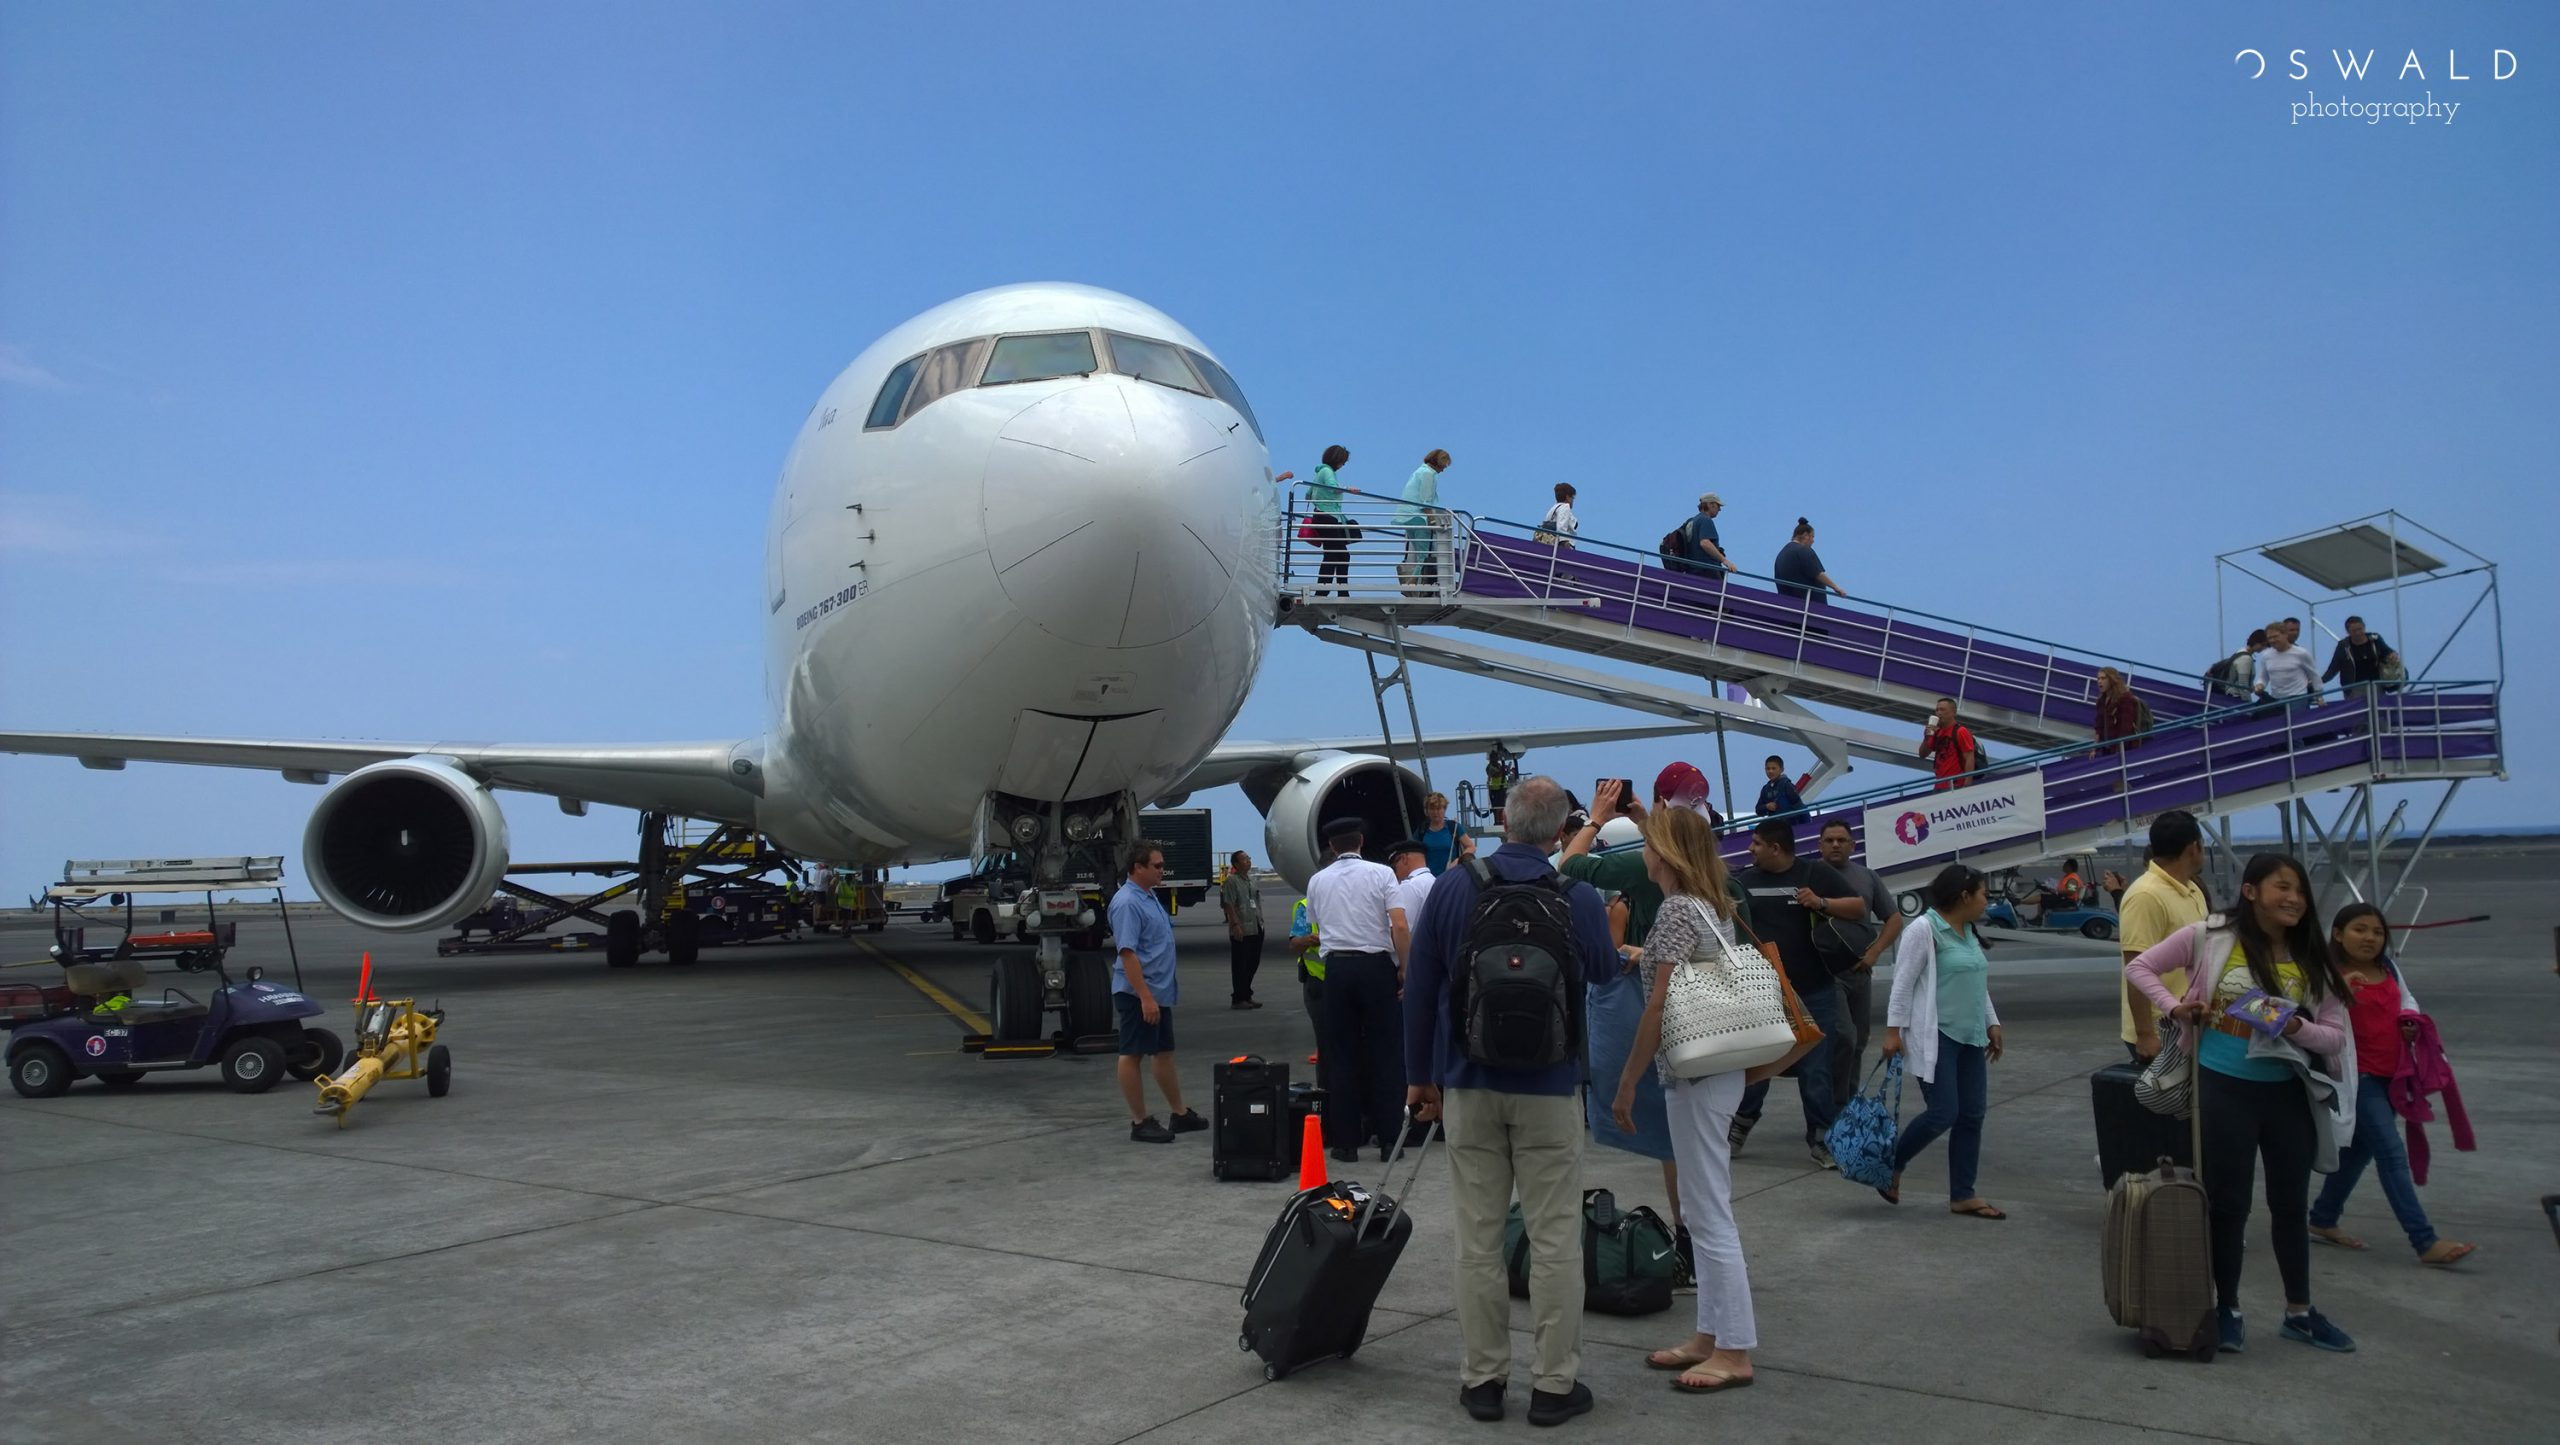 A landscape photograph of passengers unloading from an airplane on a small airport runway.